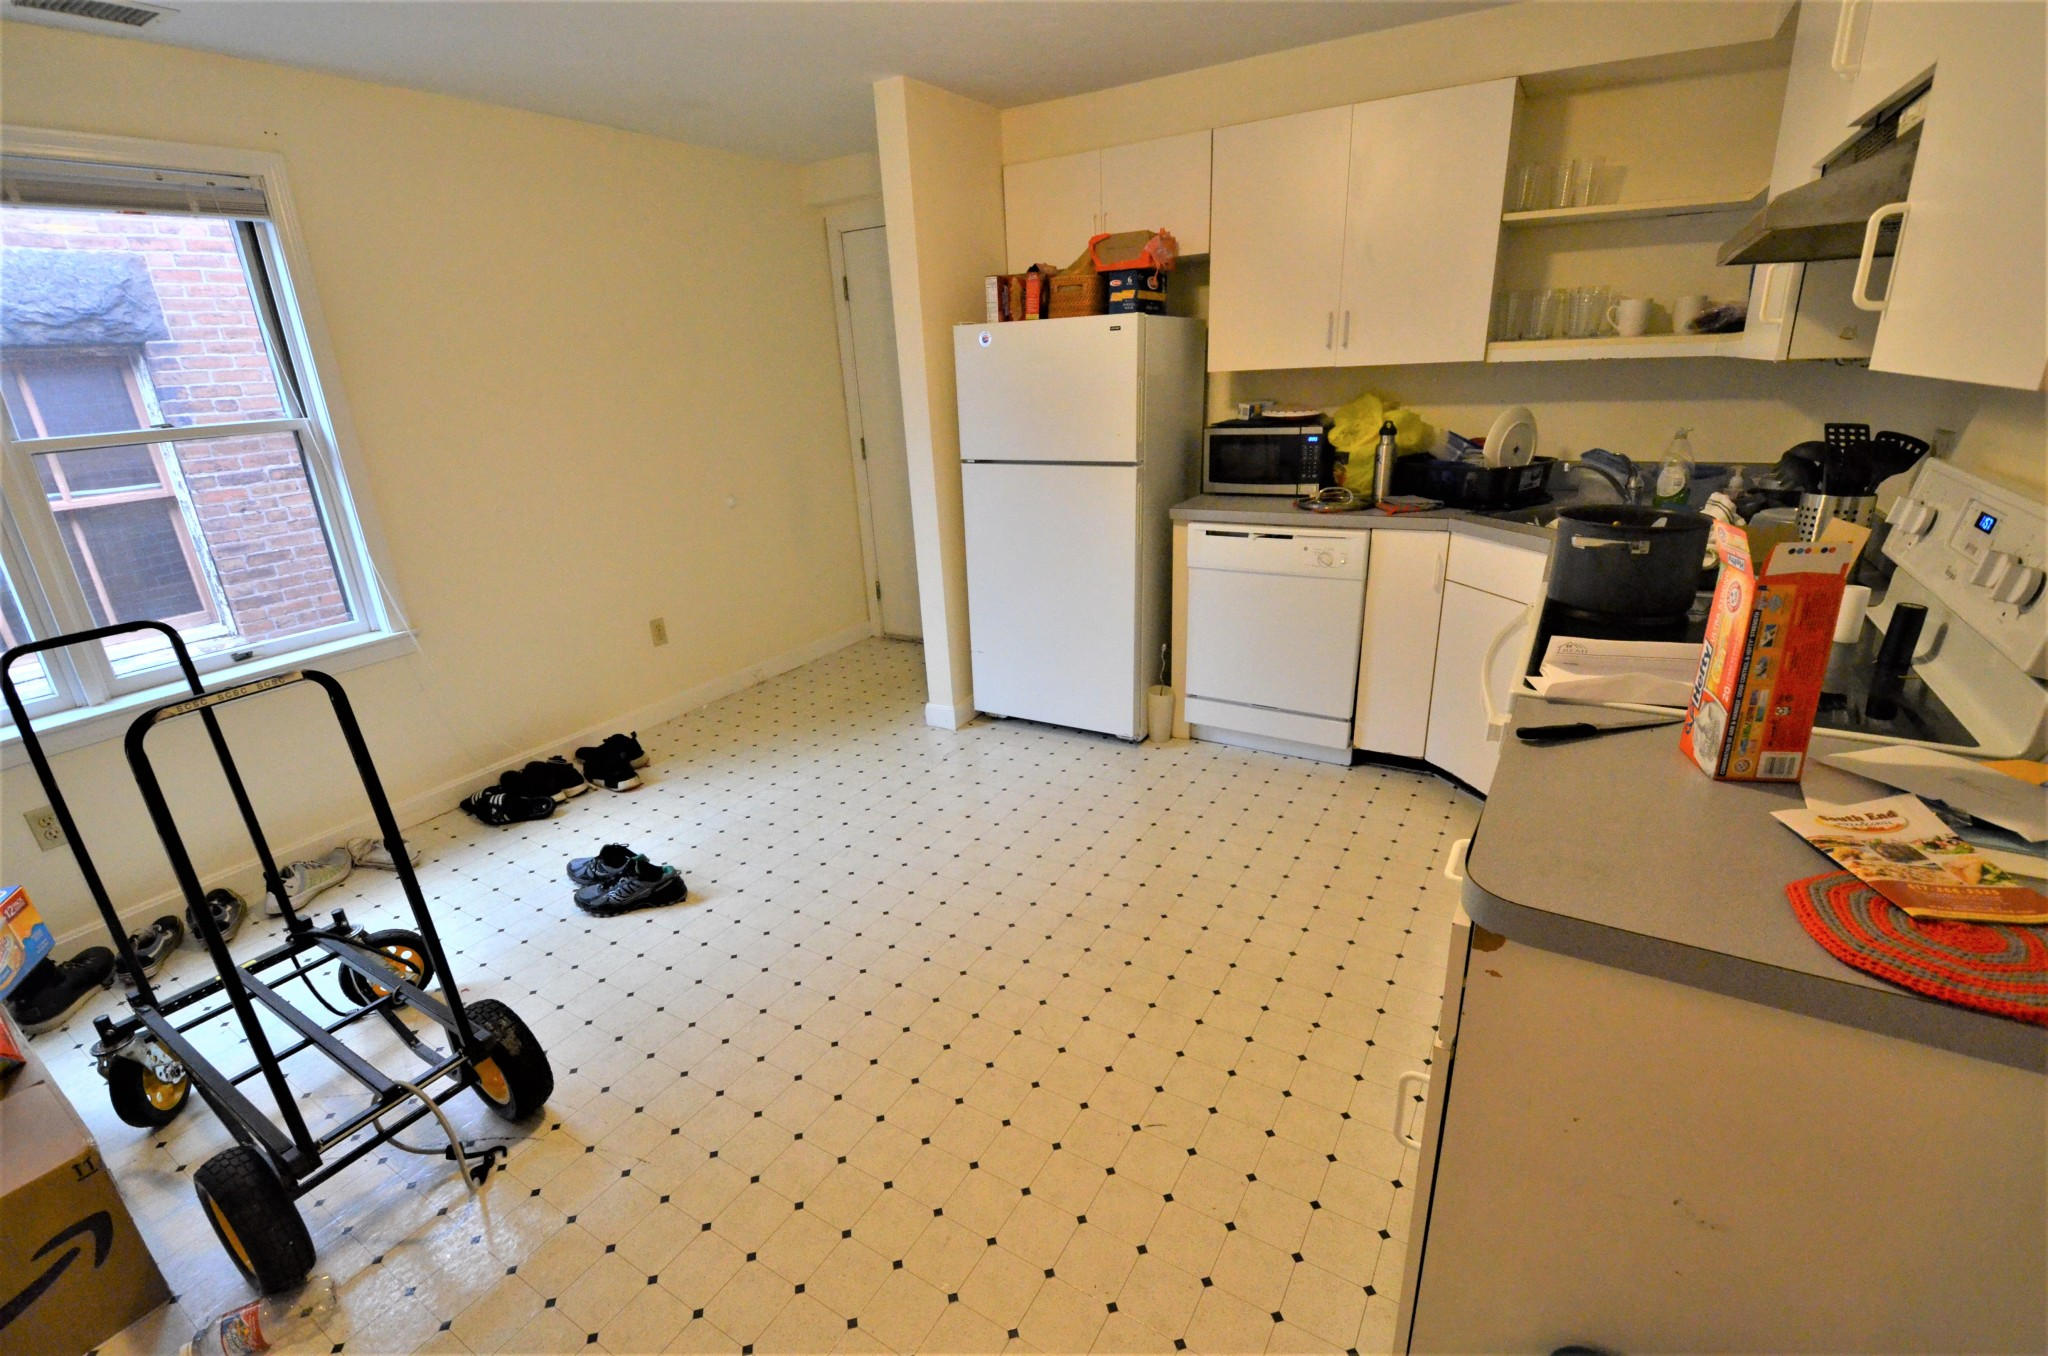 2.8 Beds, 1 Bath apartment in Boston, Fenway for $3,600